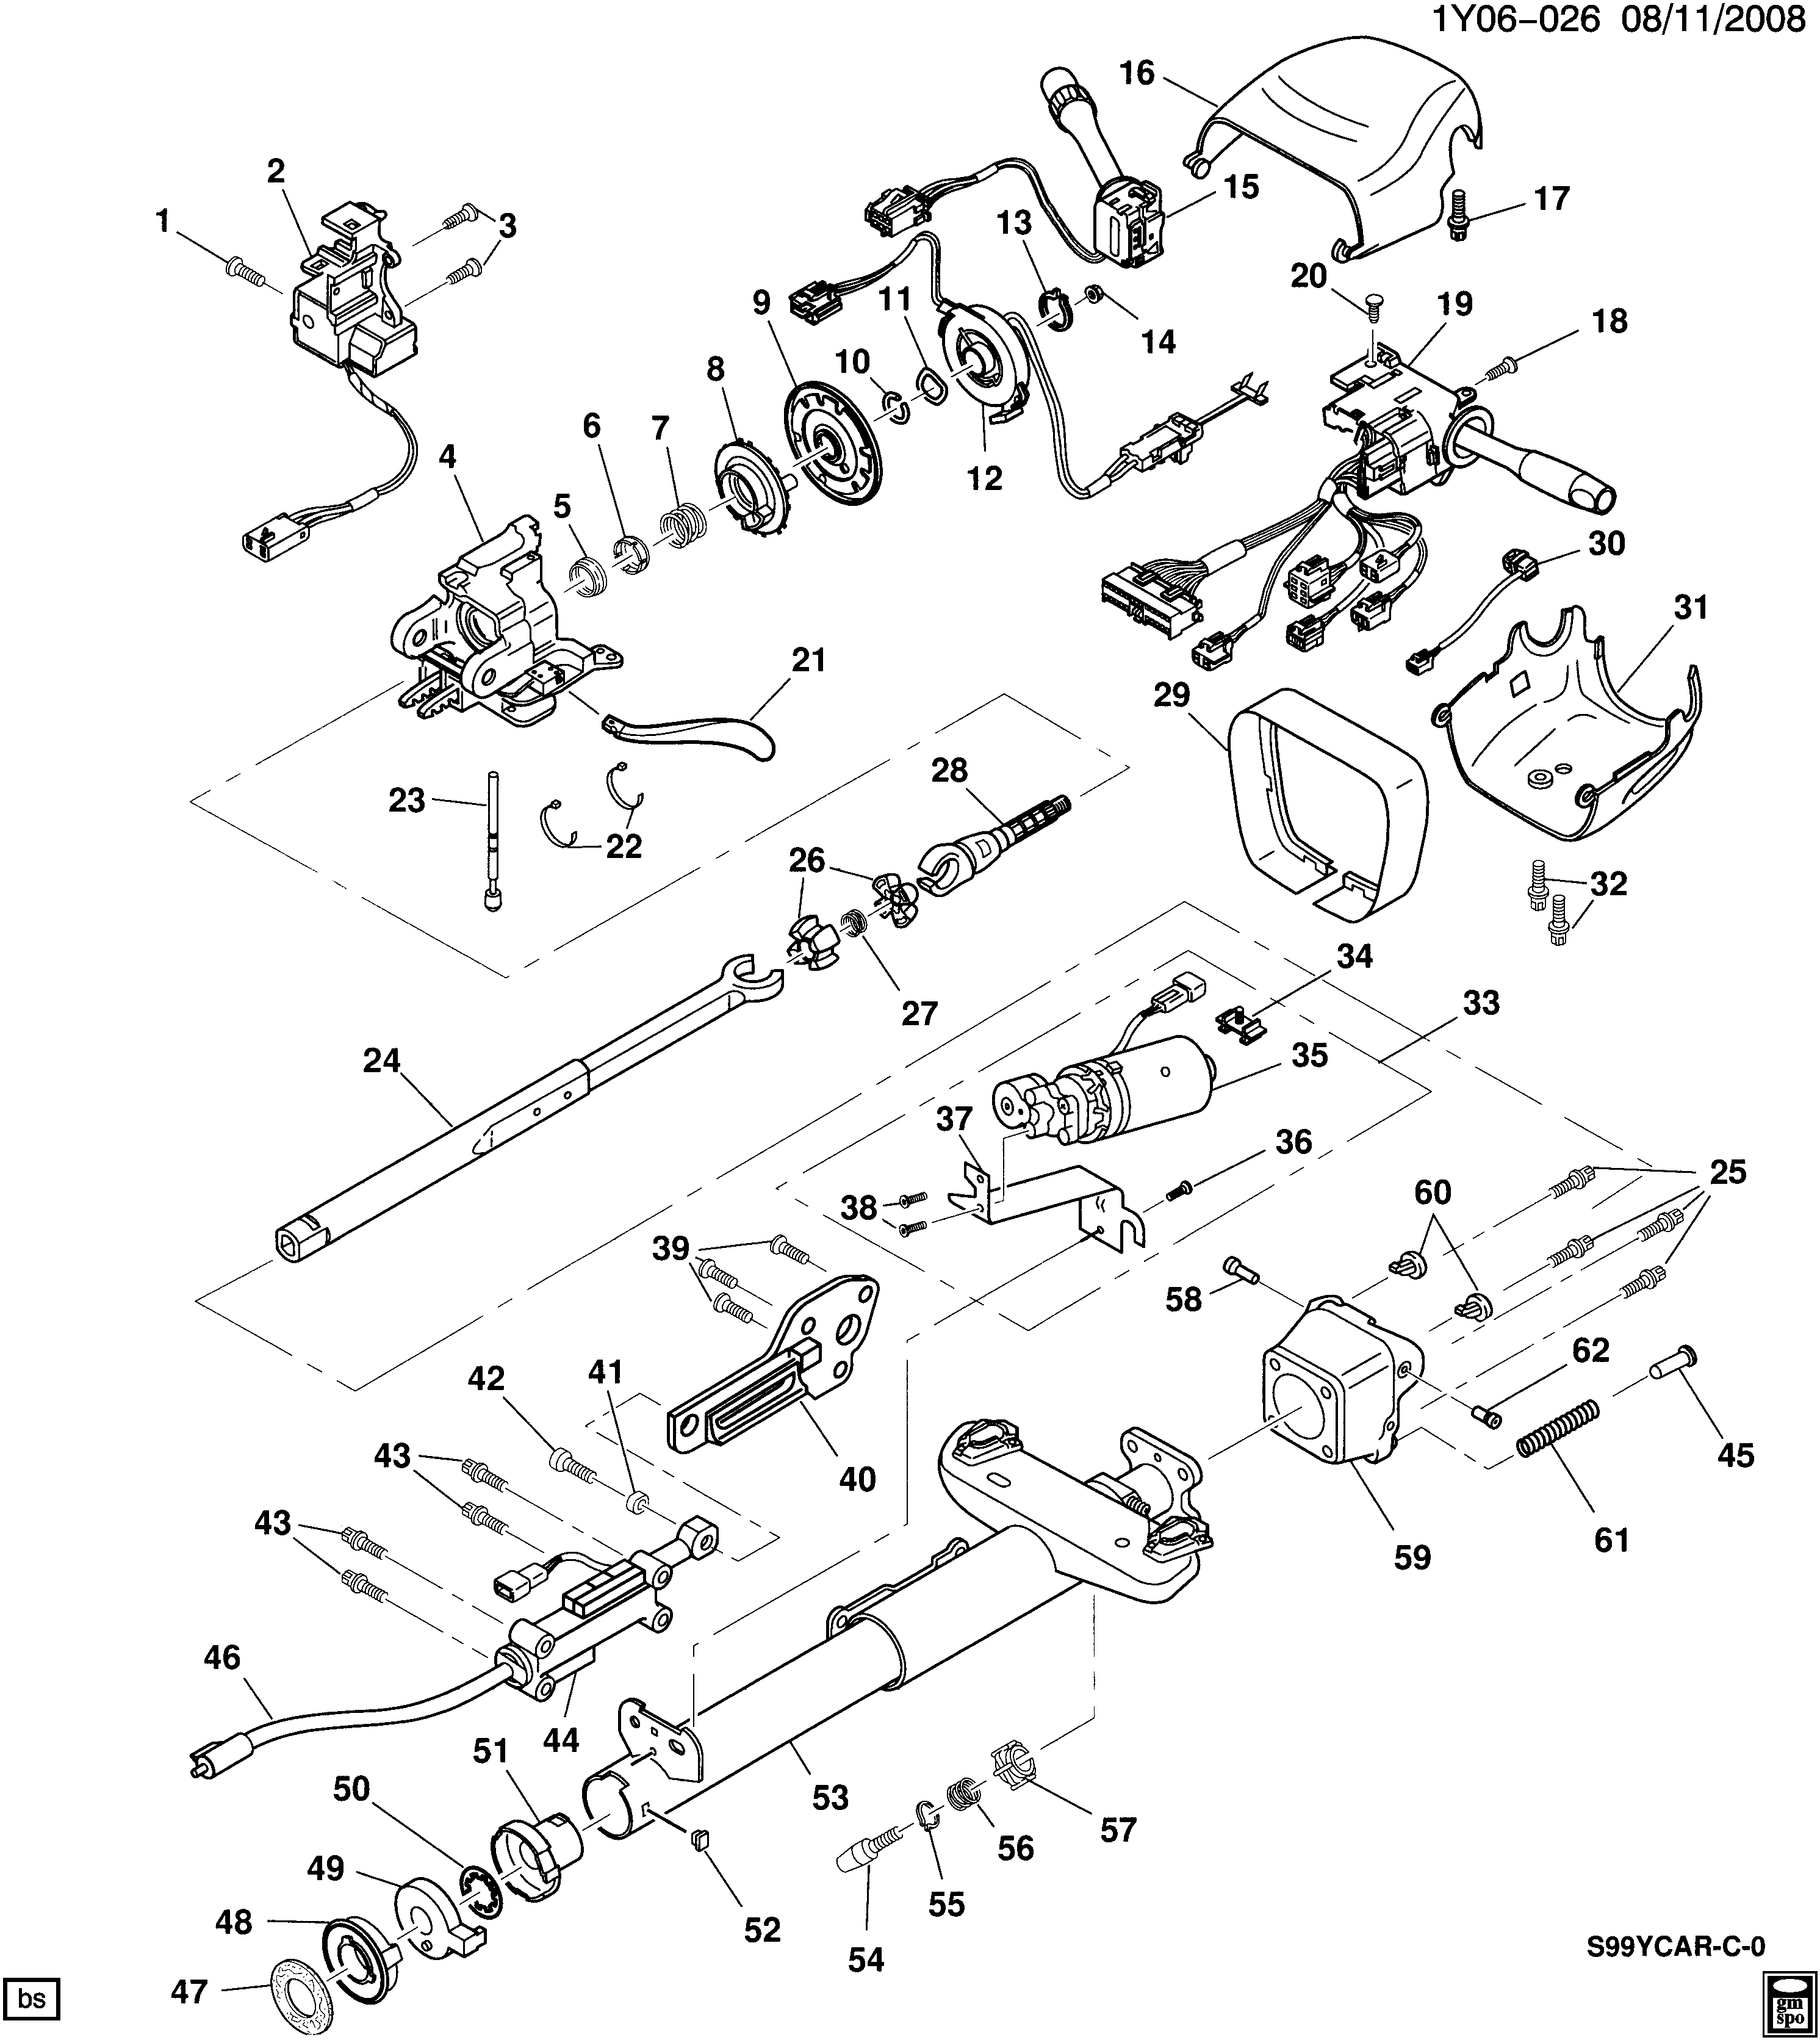 1999-2000 Y STEERING COLUMN (TILT & POWER TELESCOPE)(N37)